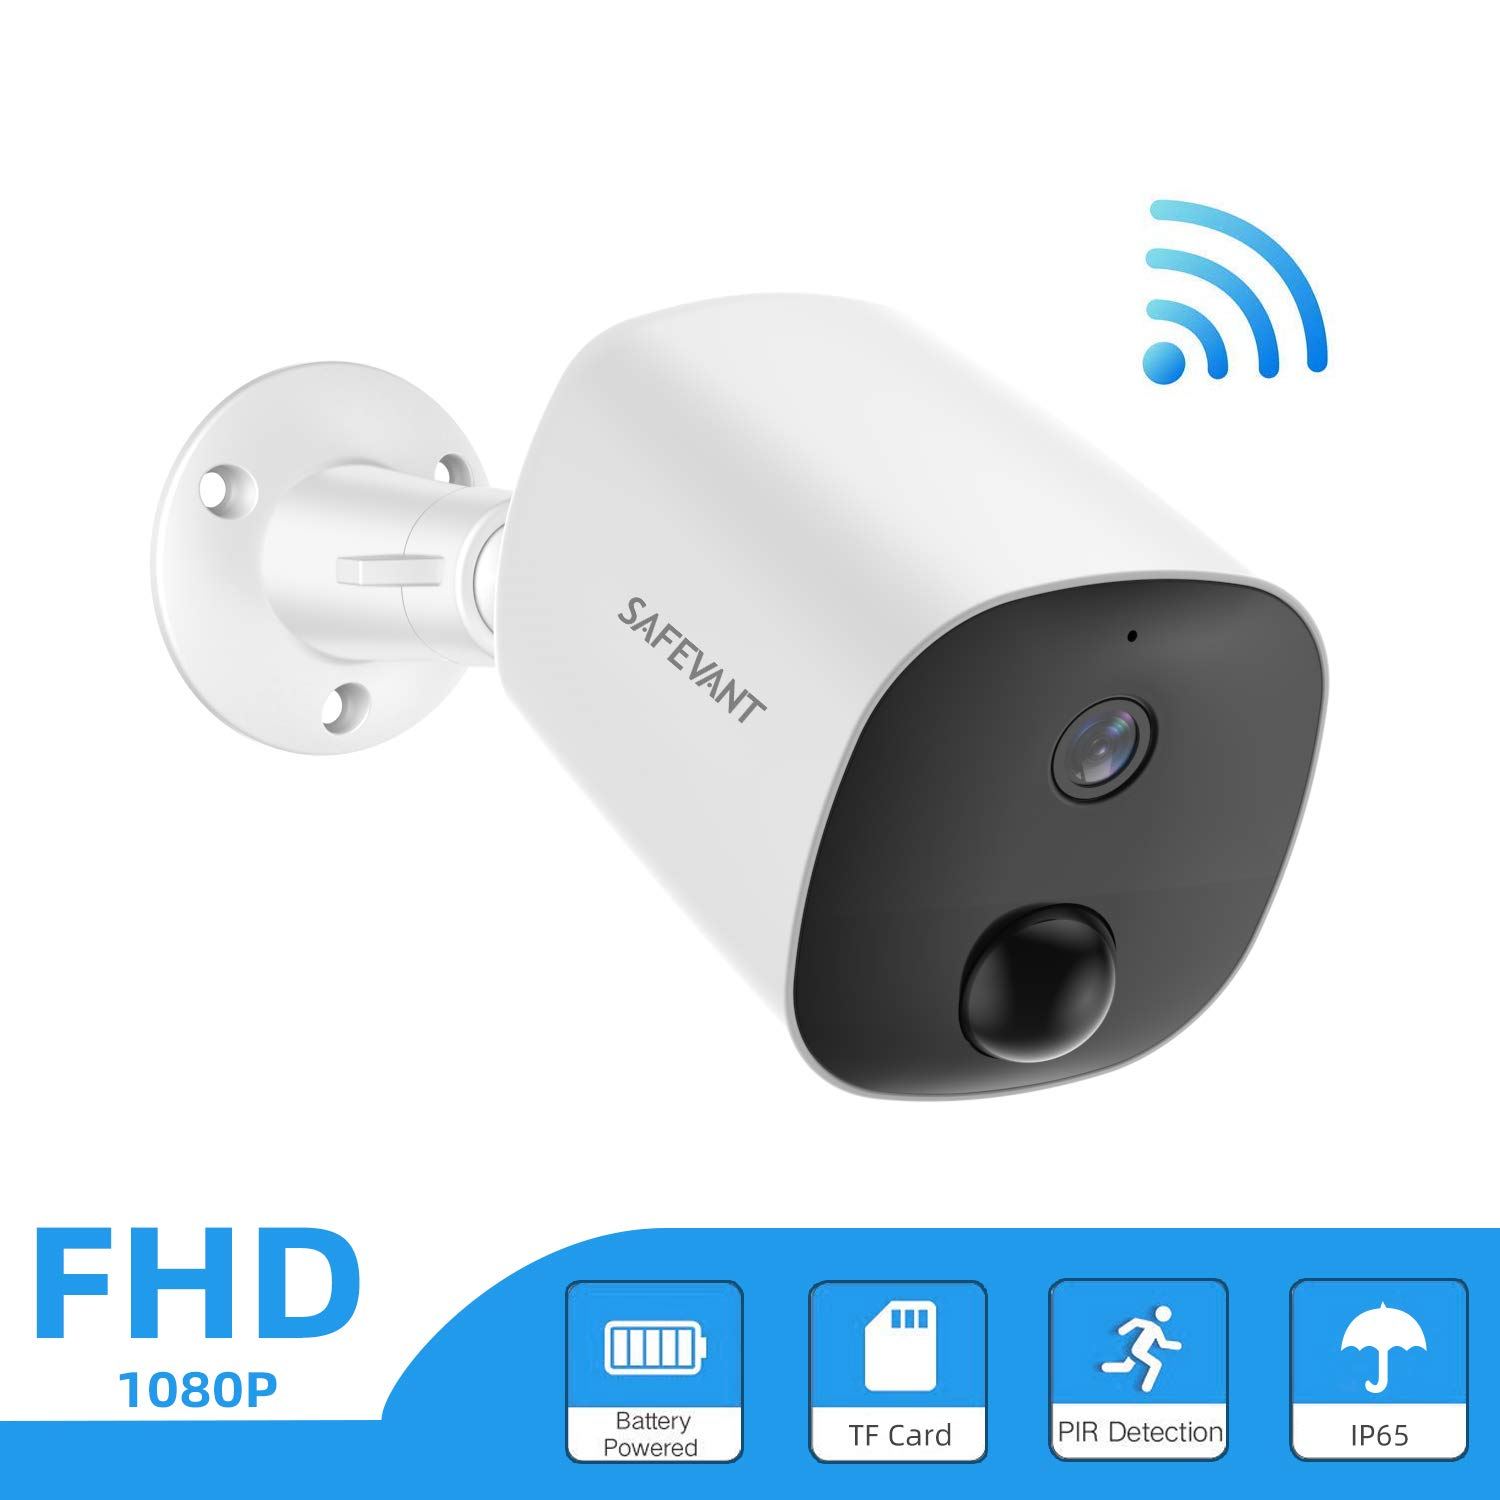 1080P HD Wireless Battery Powered Security Camera Outdoor Monitor Rechargeable